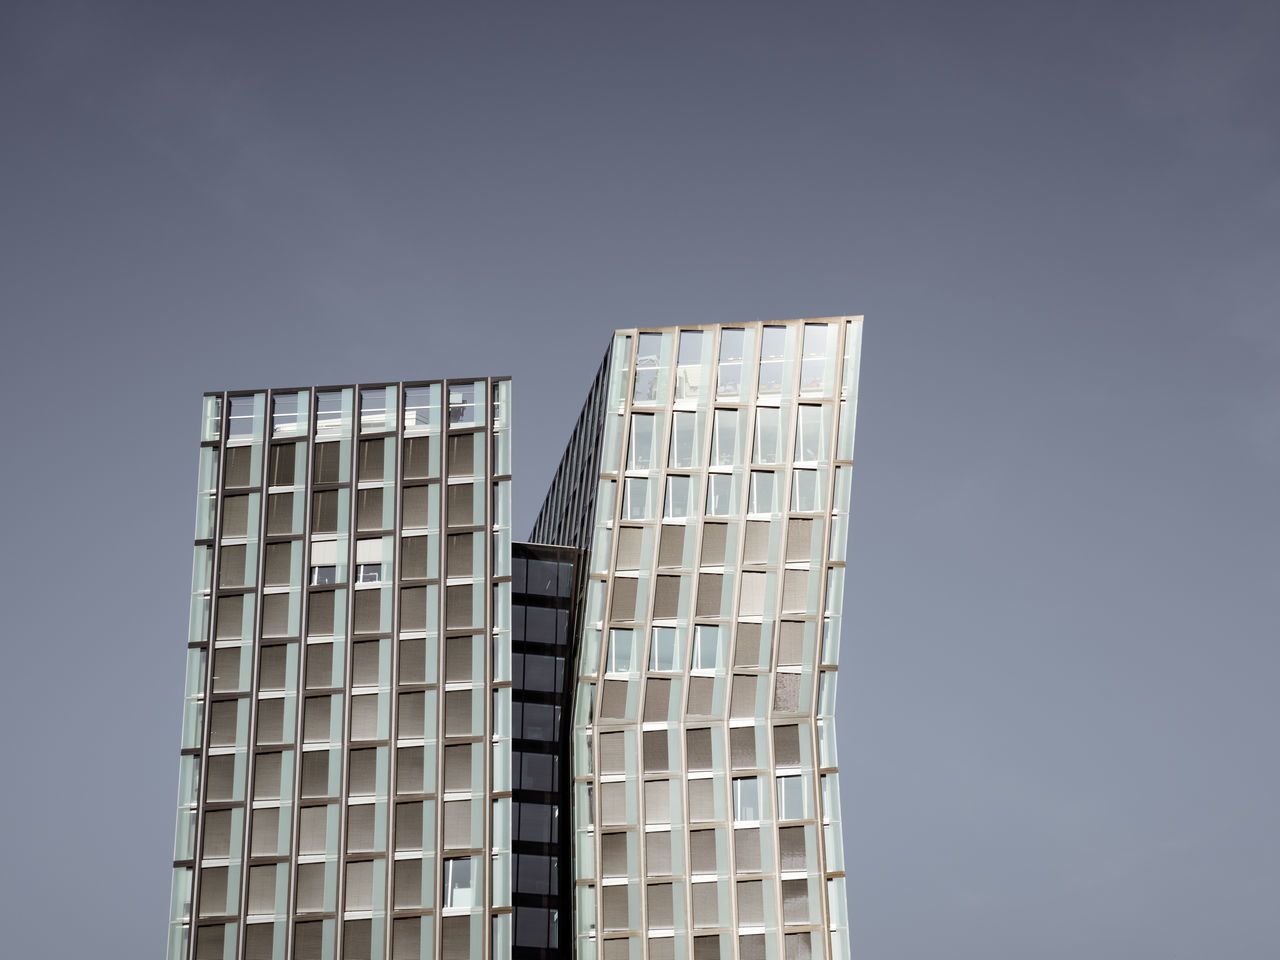 low angle view of skyscraper against clear sky Architecture Building Exterior Built Structure City City Clear Sky Day Gray Background Hamburg Low Angle View Muted Colors No People Outdoors Philipp Dase Sky Skyscraper Summer